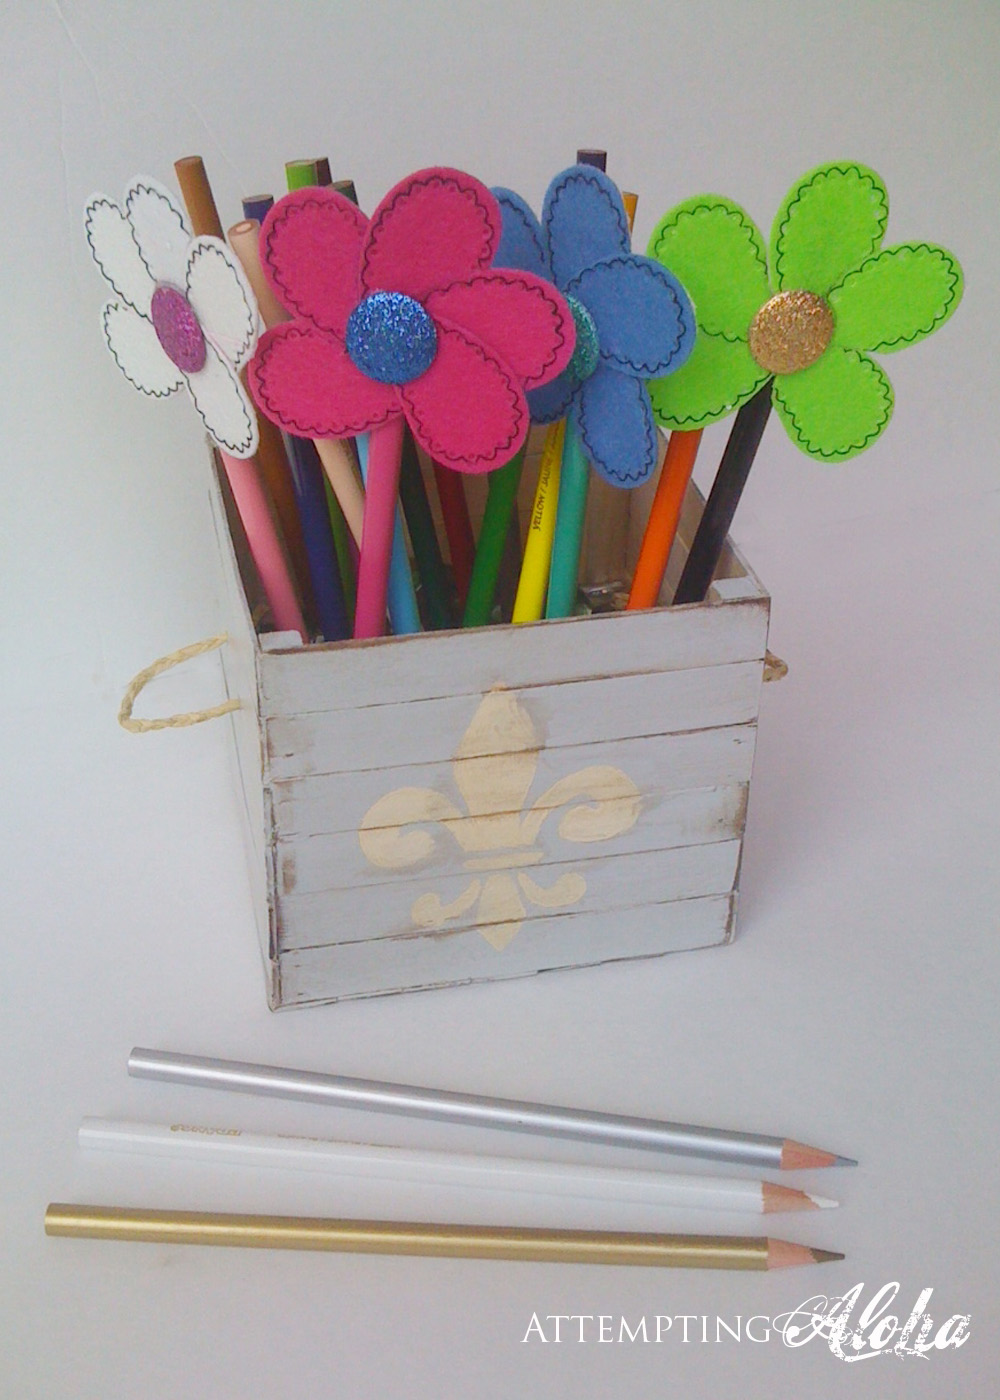 DIY Pencil holder out of popsicle sticks